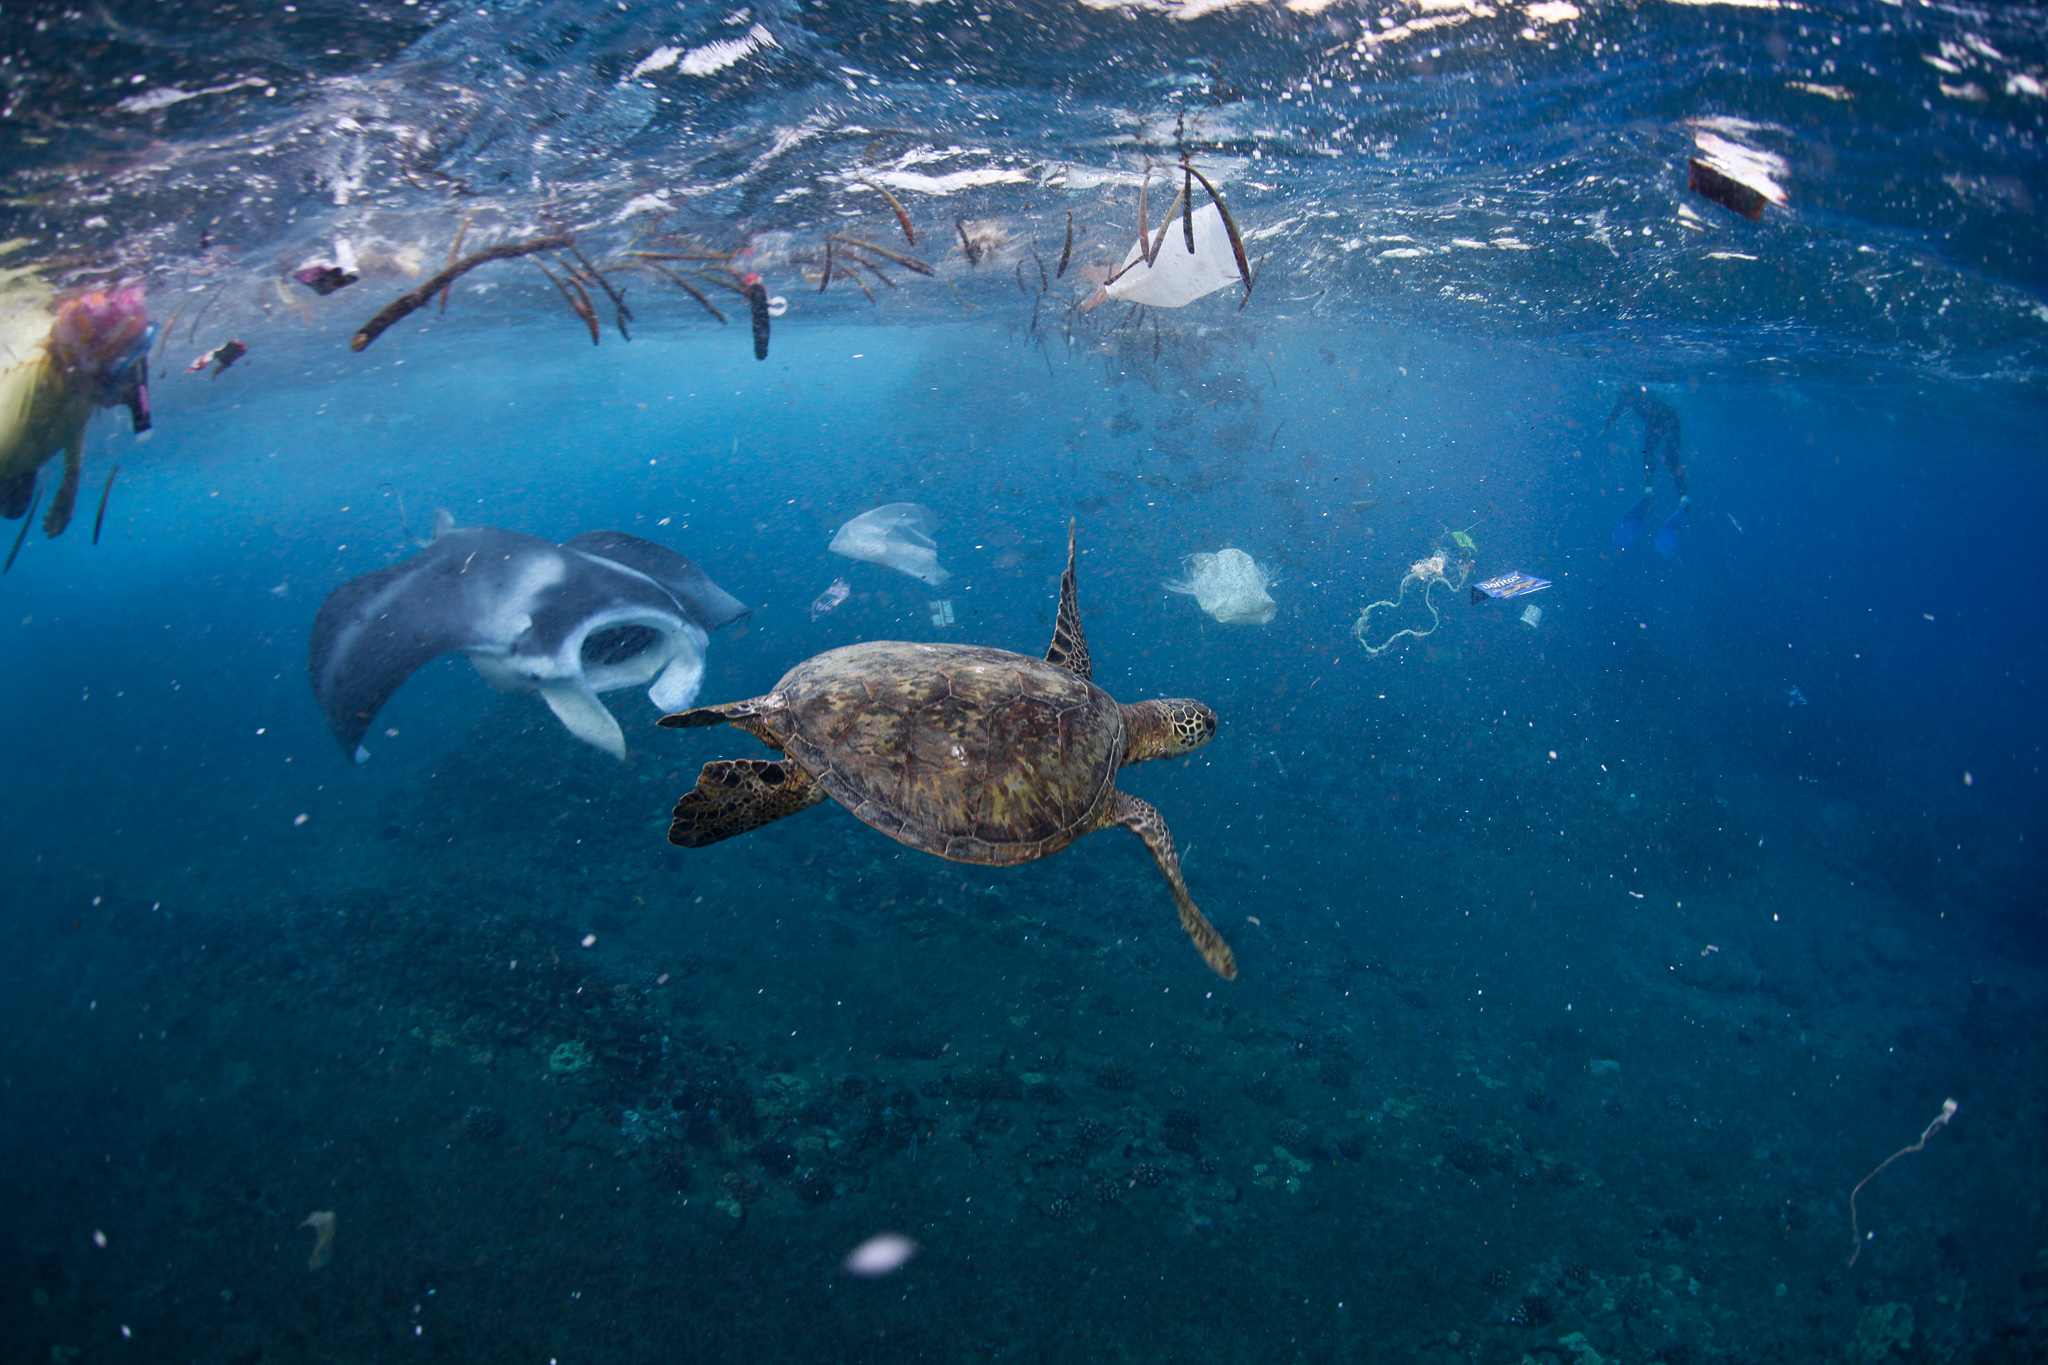 ocean-trash-ocean.nationalgeographic.com-.jpg